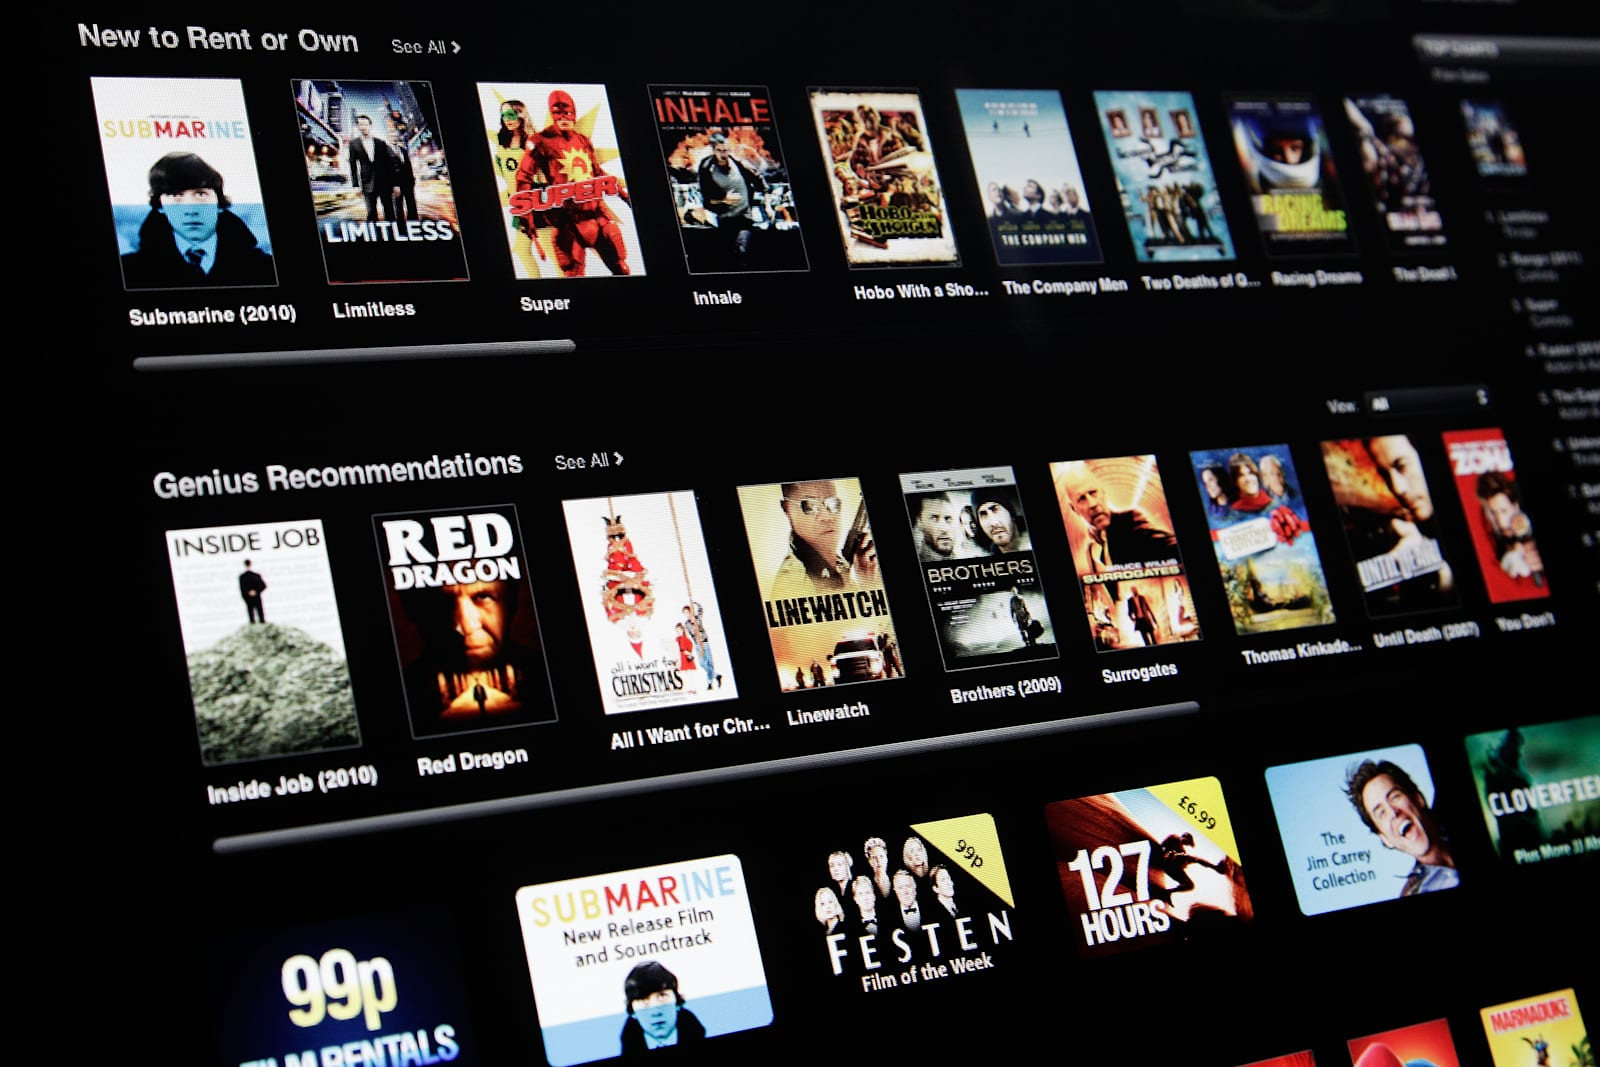 Apple reportedly working to rent new movies early on iTunes